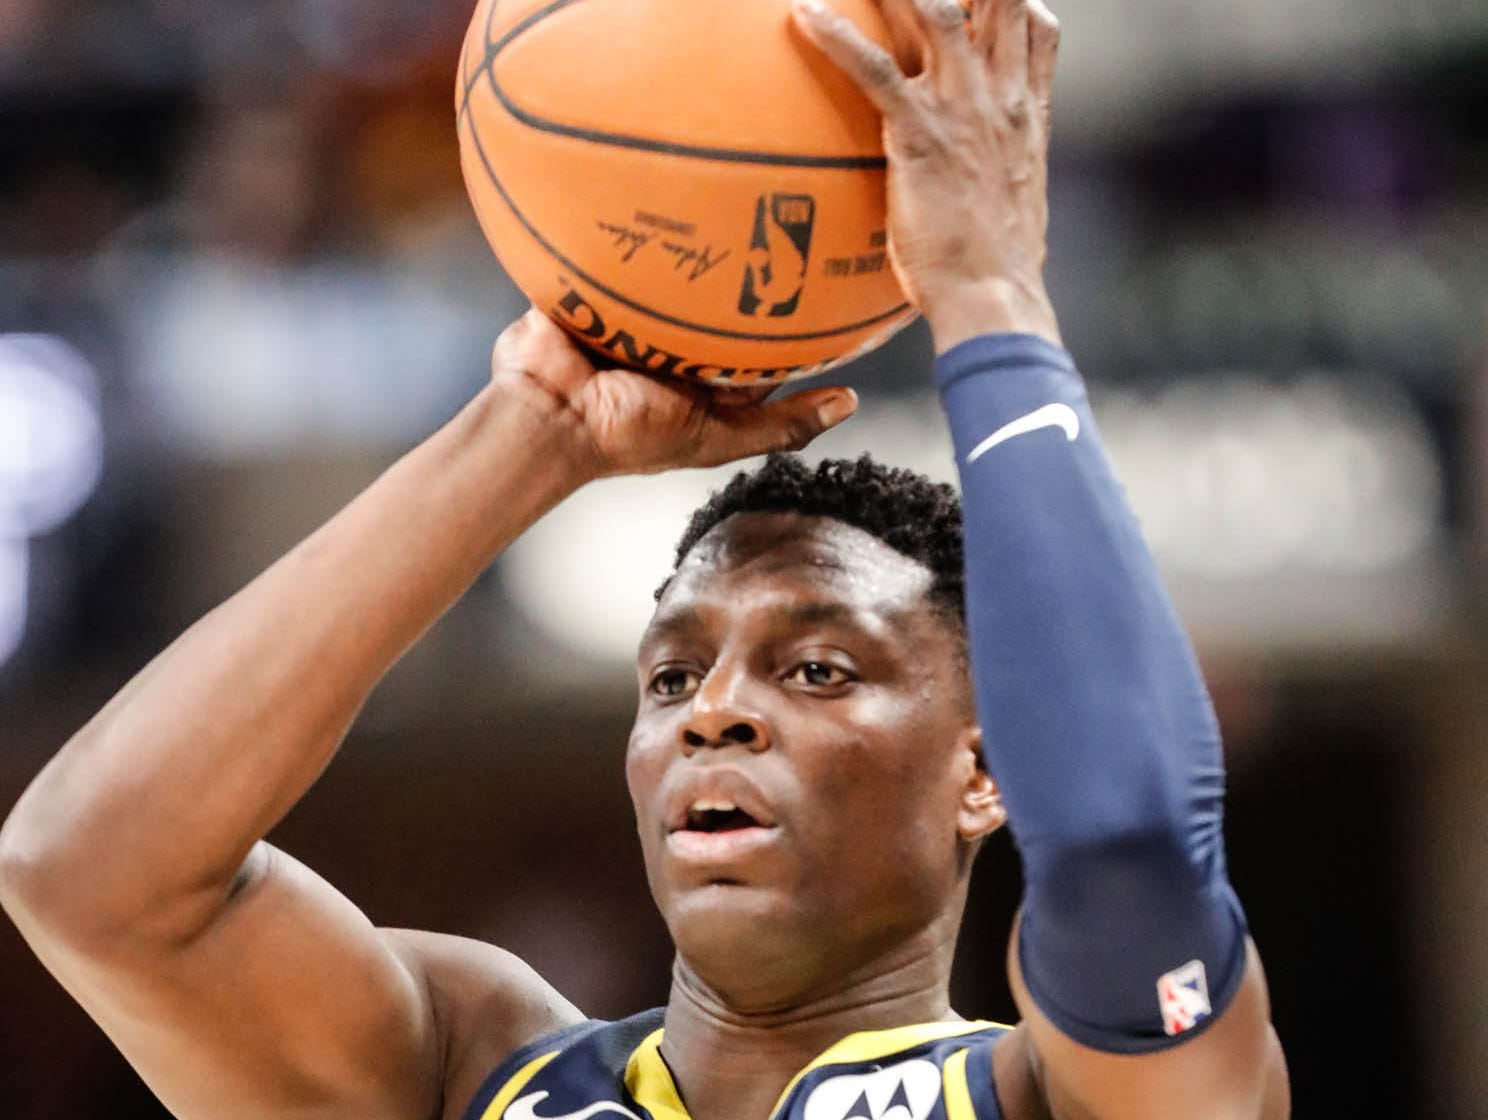 Indiana Pacers guard Darren Collison (2) shoots a free throw during a game between the Pacers and Hornets at Bankers Life Fieldhouse on Sunday, Jan. 20, 2019.